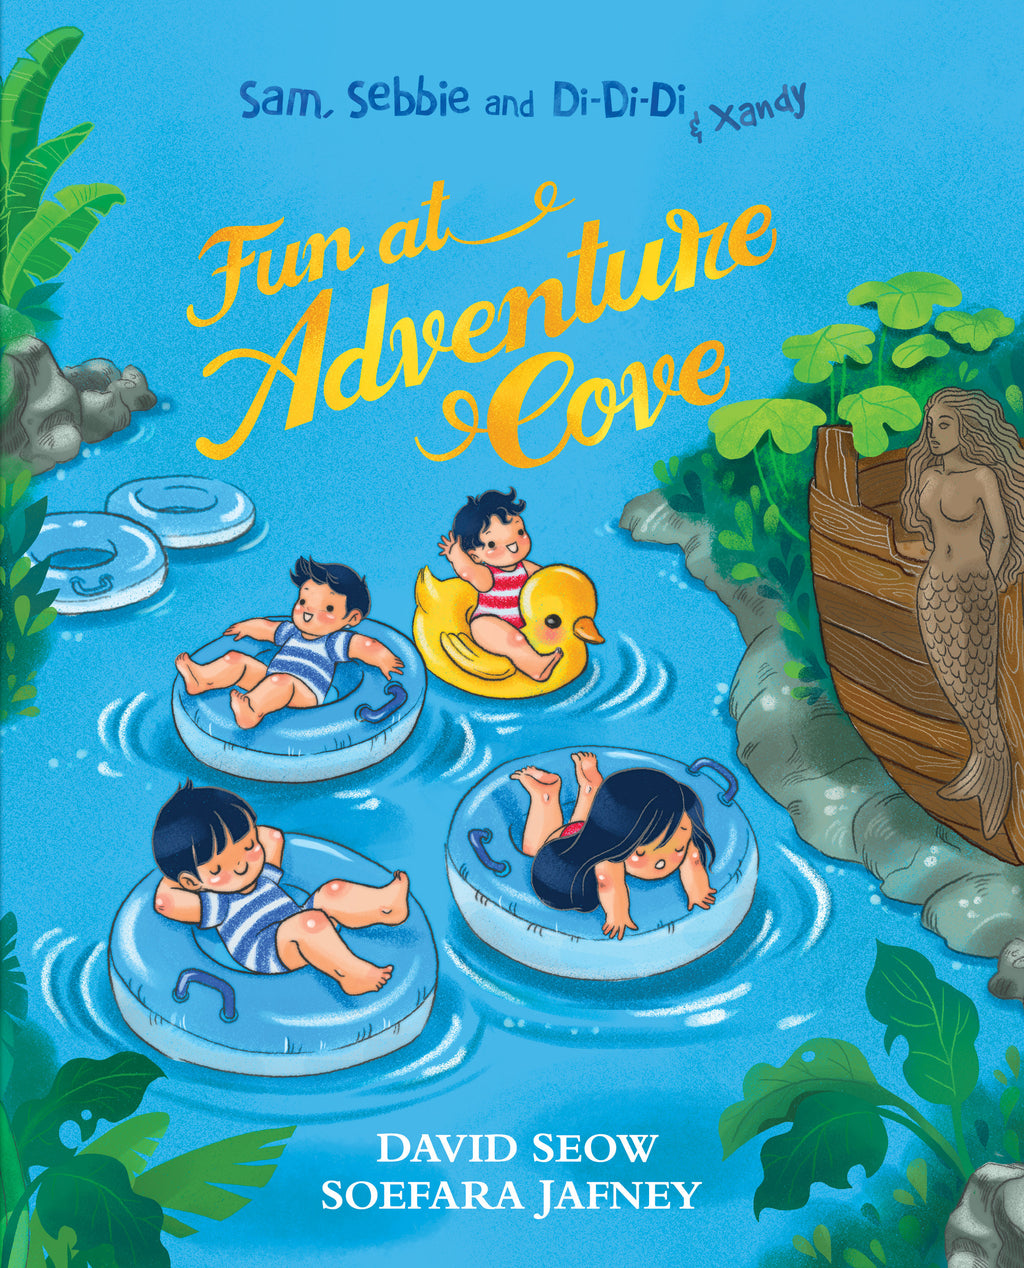 Sam, Sebbie and Di-Di-Di & Xandy: Fun at Adventure Cove (book 9)